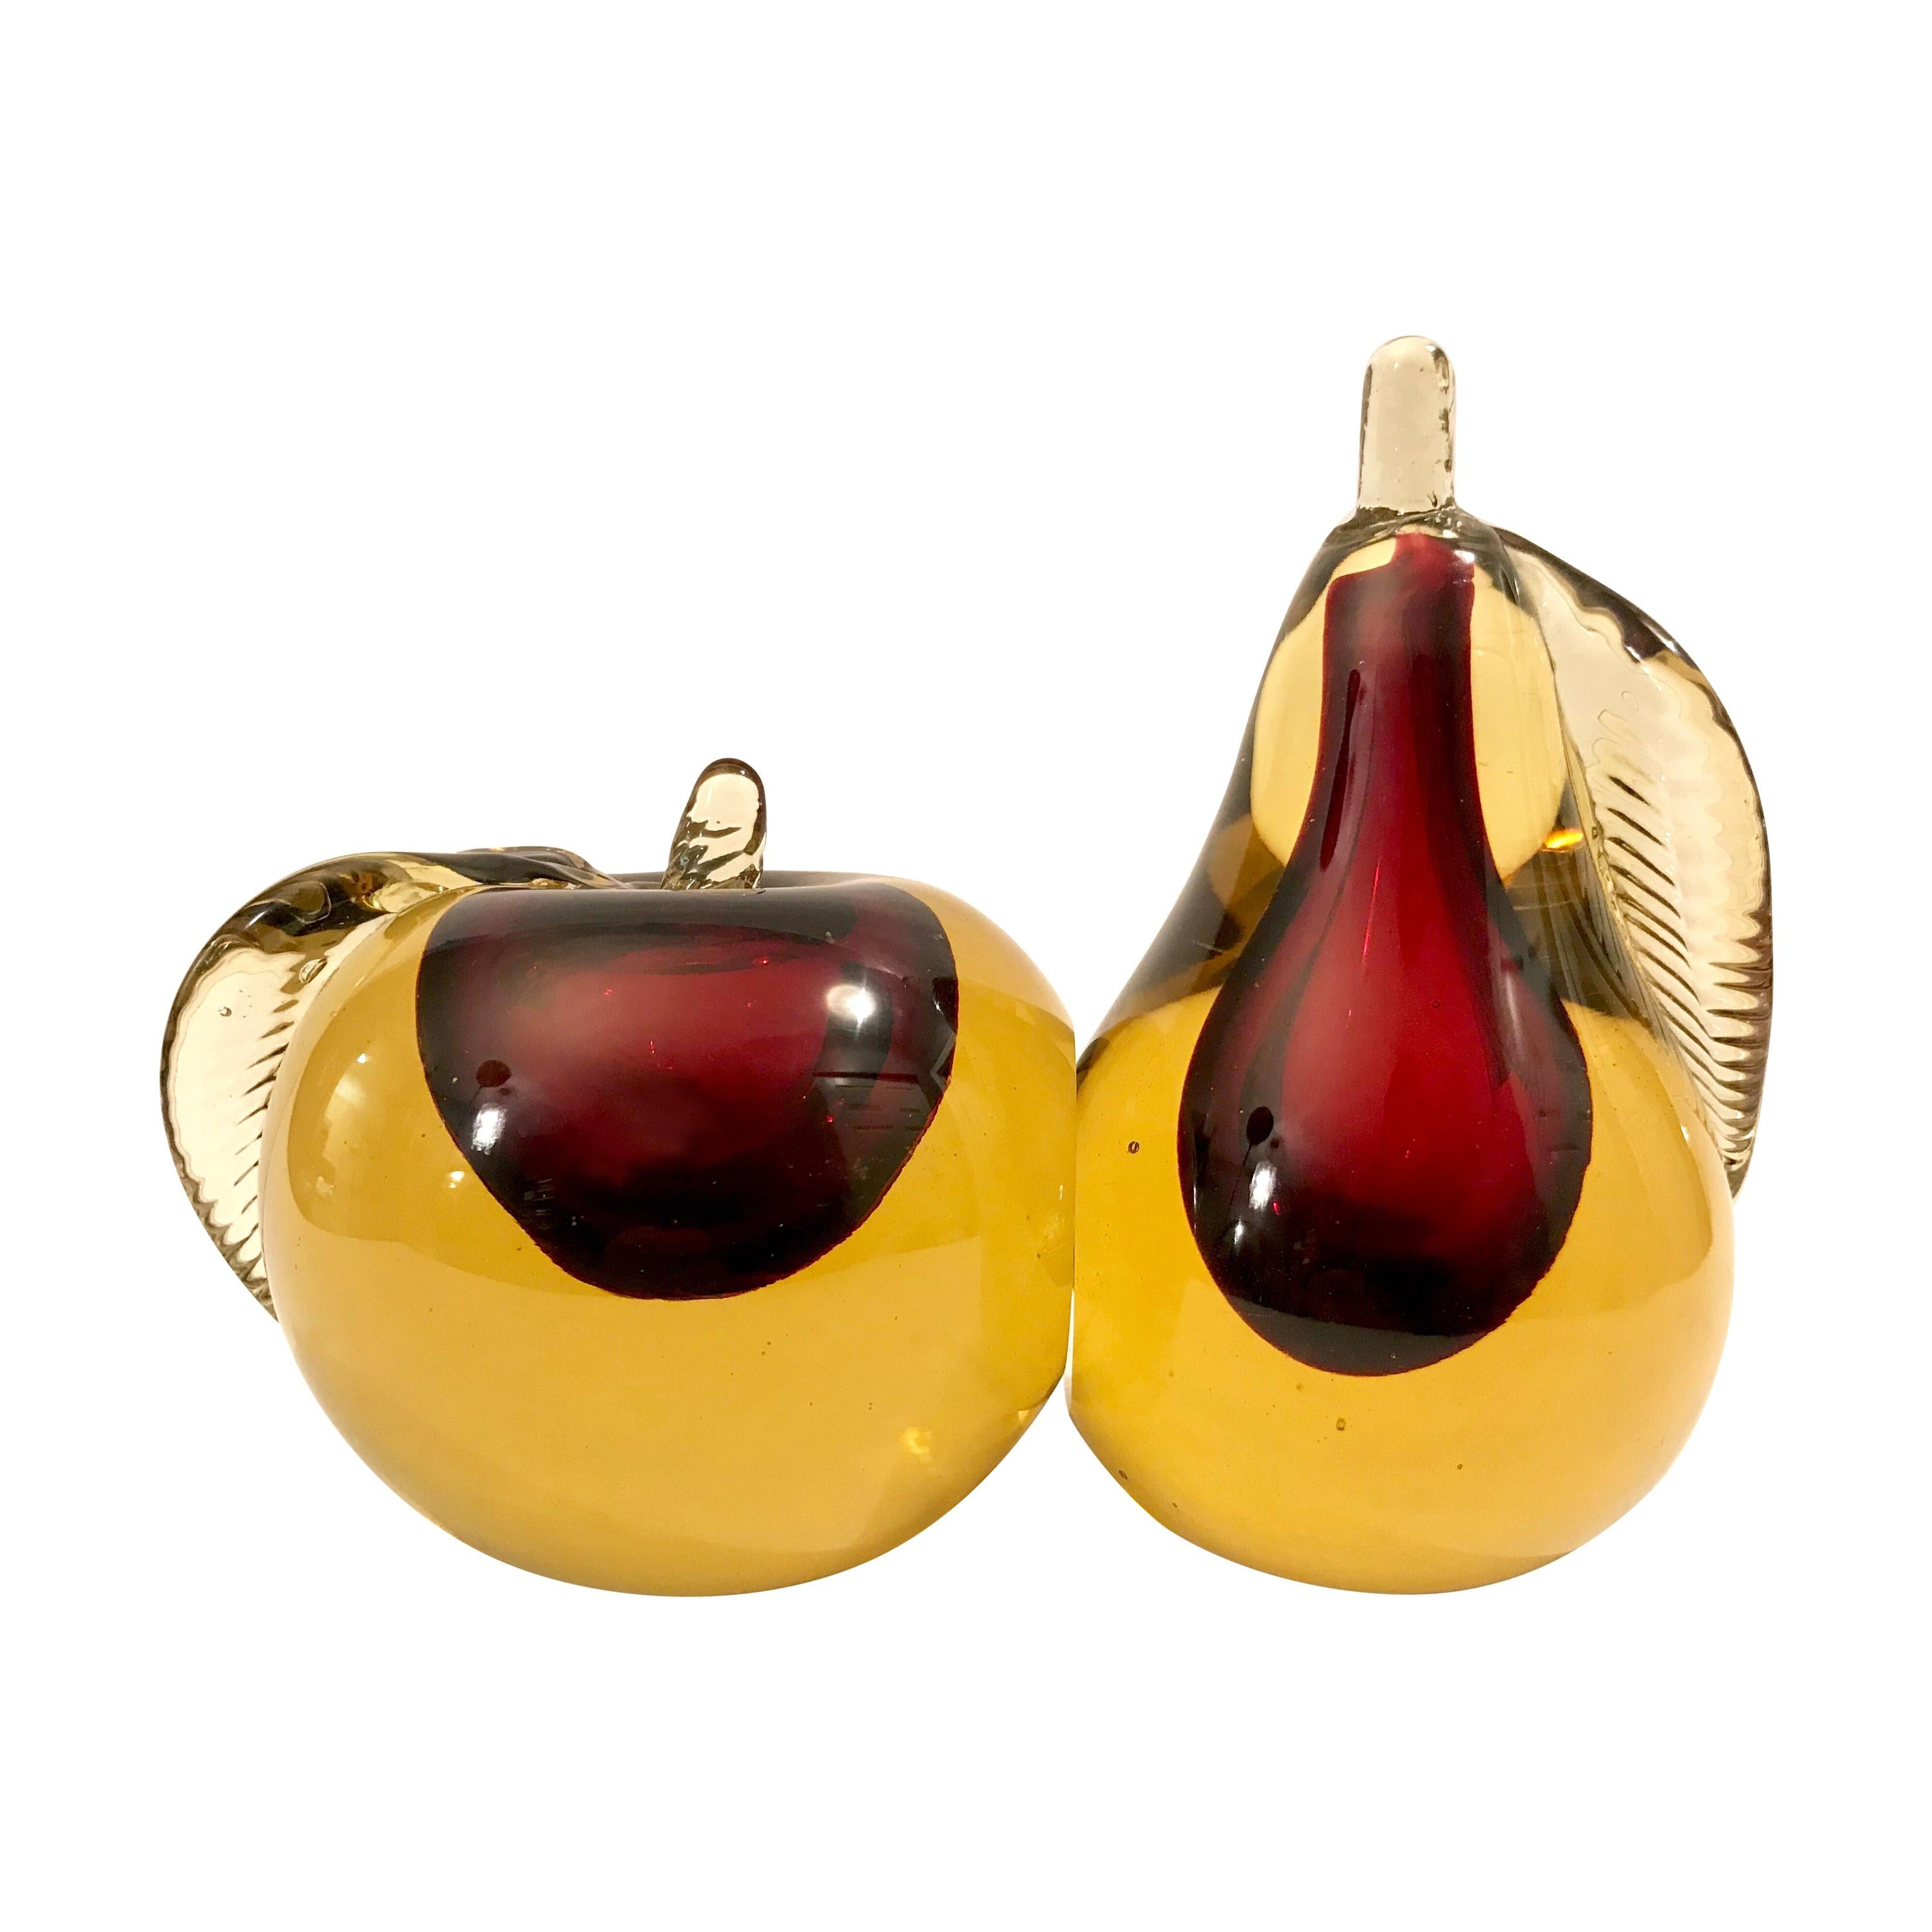 Murano Sommerso Art Glass Apple and Pear Bookends